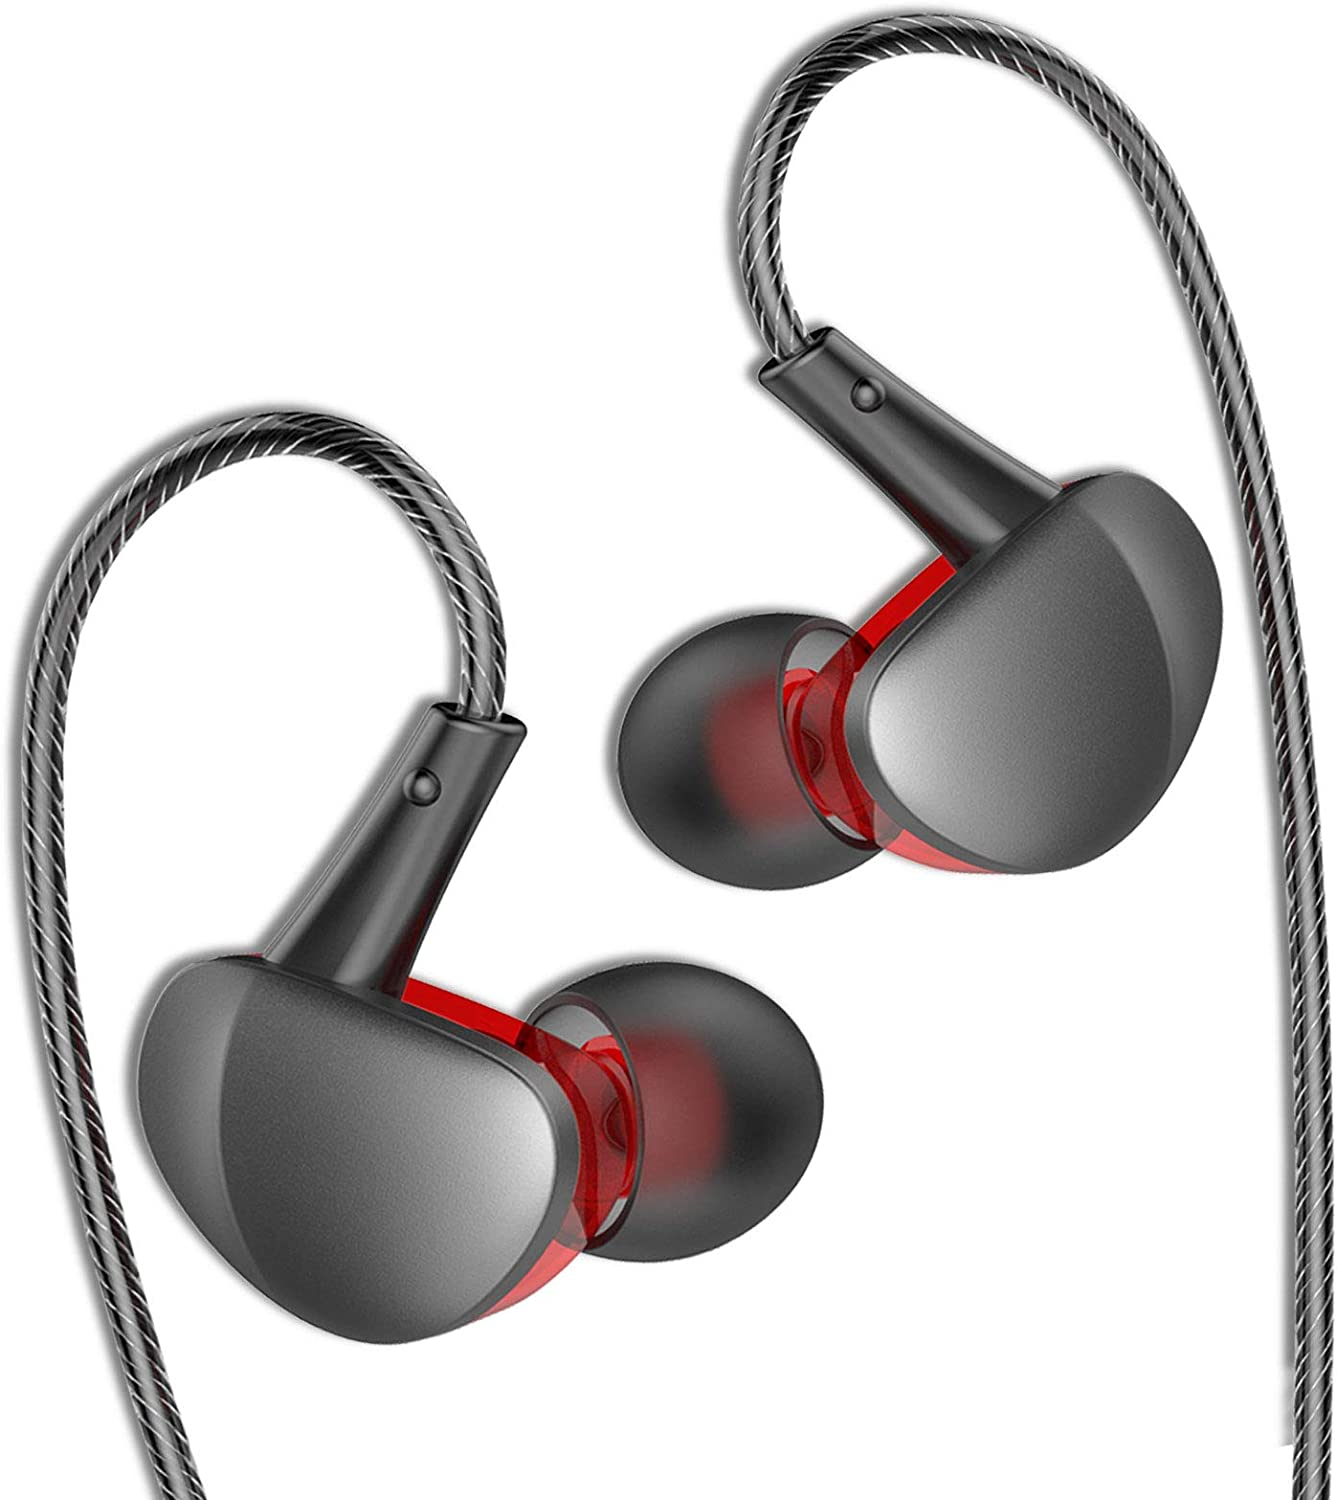 MOVOYEE Earbuds Aux Headphone Wired Earbuds for Android Earphone for iPhone 6S 6 Plus/SE/iPod/Samsung S10 S9 S8/PC Xbox PS4 Gaming,Earbuds Wrap Around Ear Headset Noise Cancelling for Workout,Running